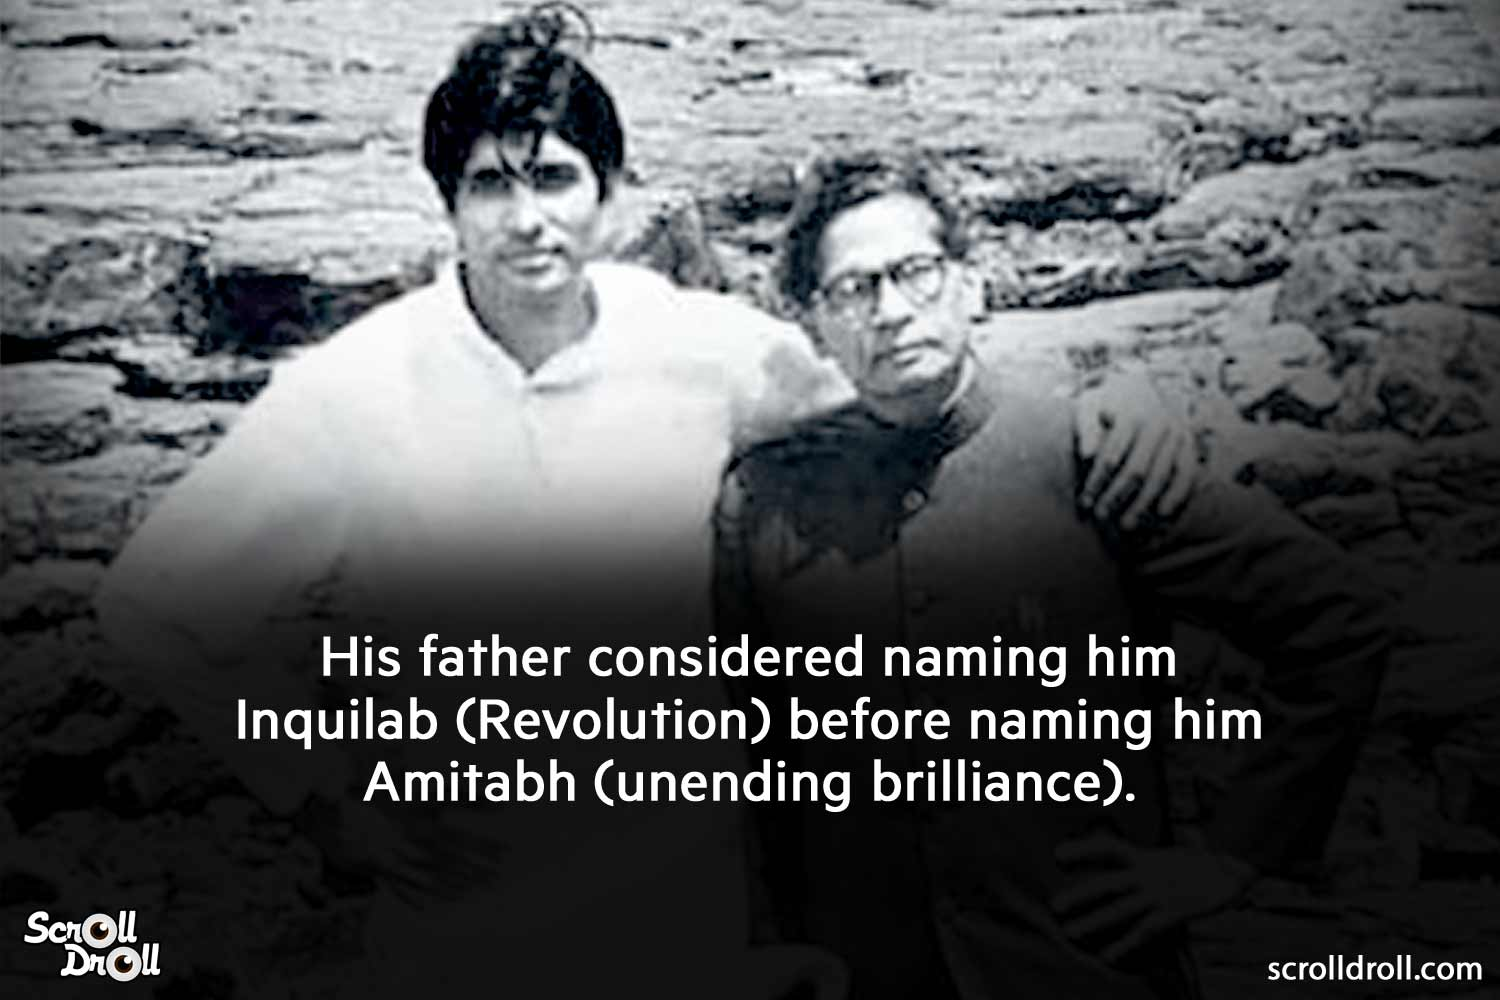 amitabh's fathe considered naming him inquilab-amitabh bachchan facts